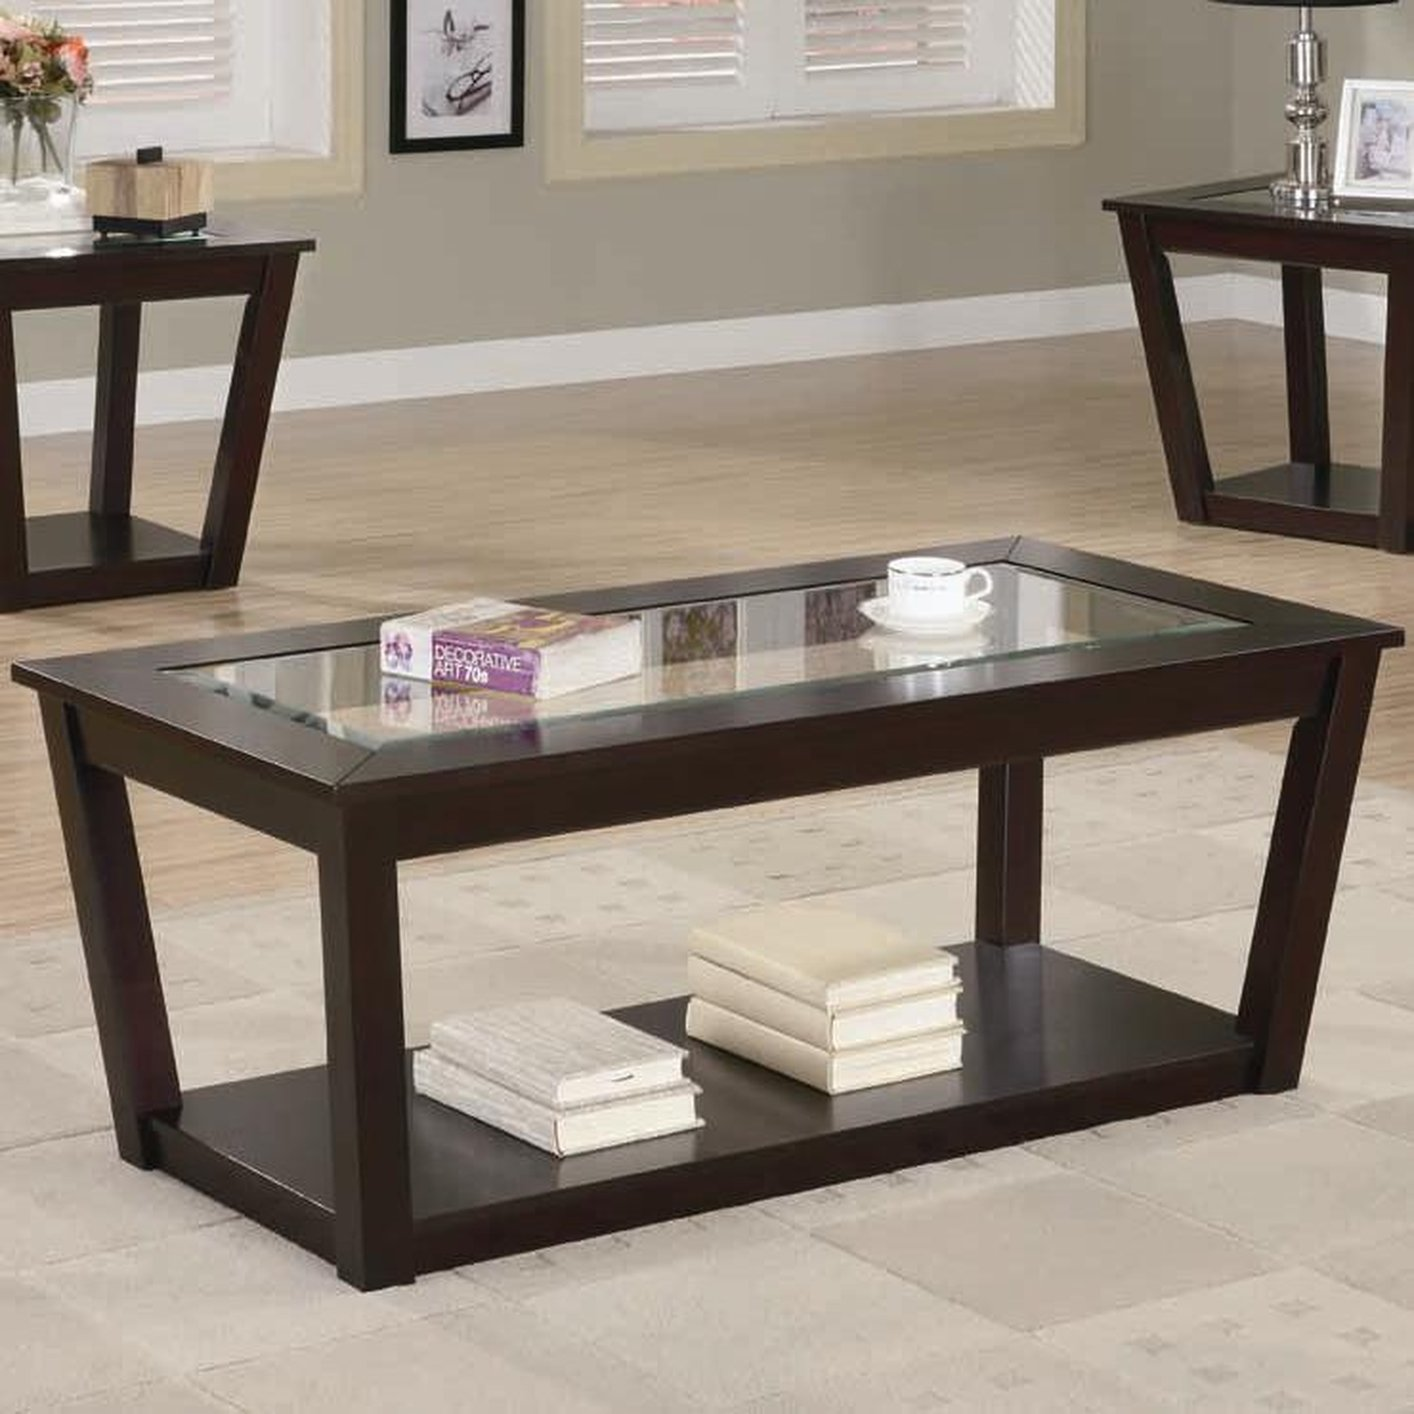 Fenmore brown glass coffee table set steal a sofa for Glass living room table